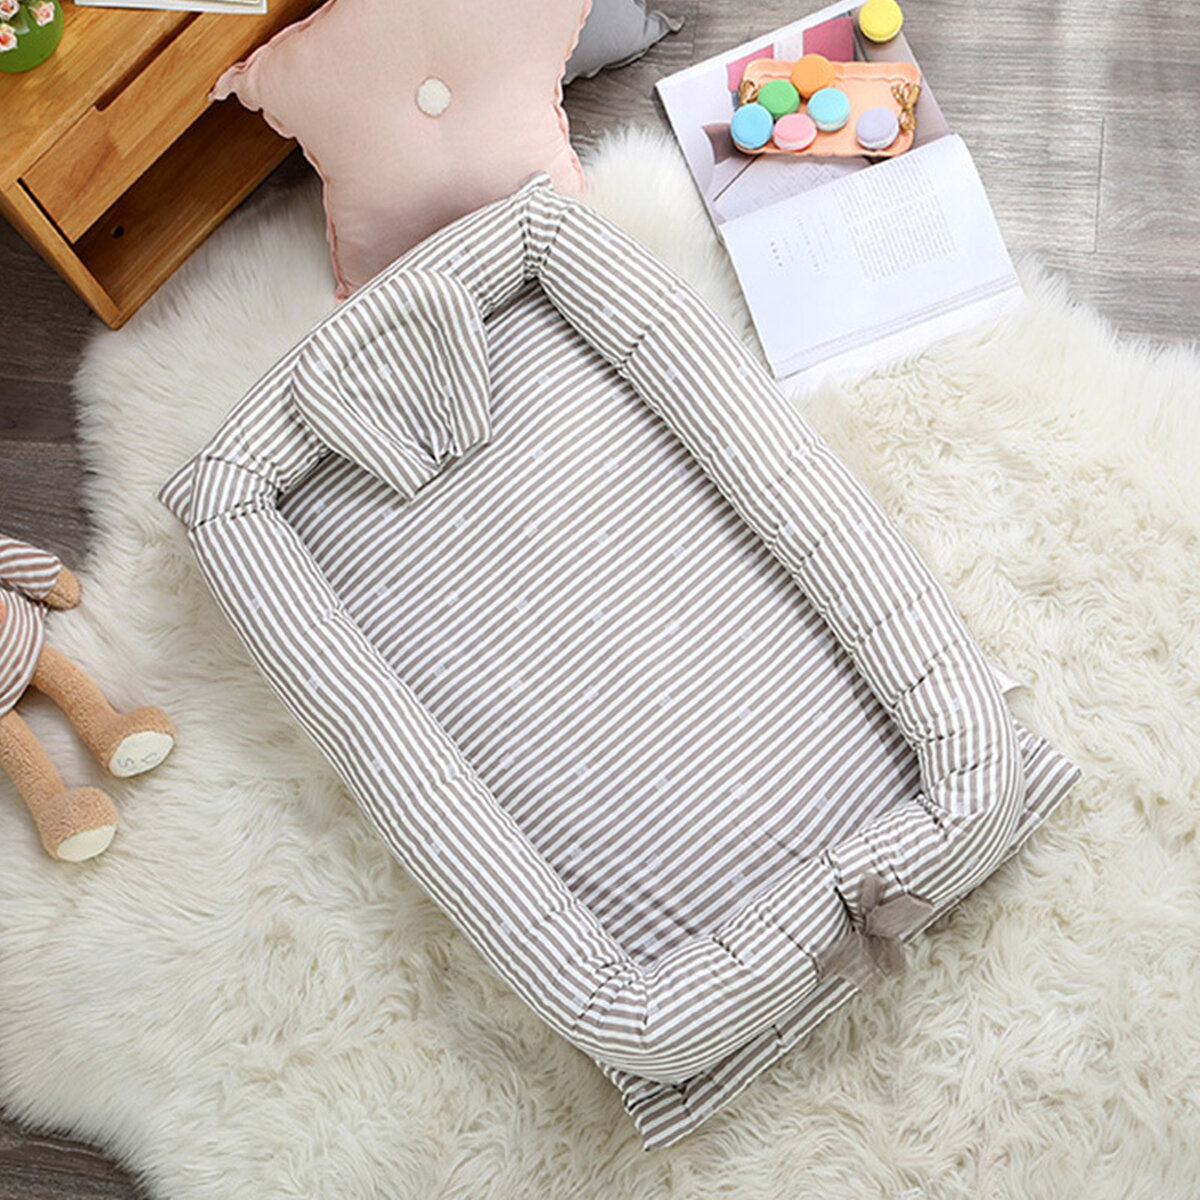 Baby Travel Mattress Portable Baby Nest Newborn Nursery Foldable Travel Bed With Bumper Cot Mattress